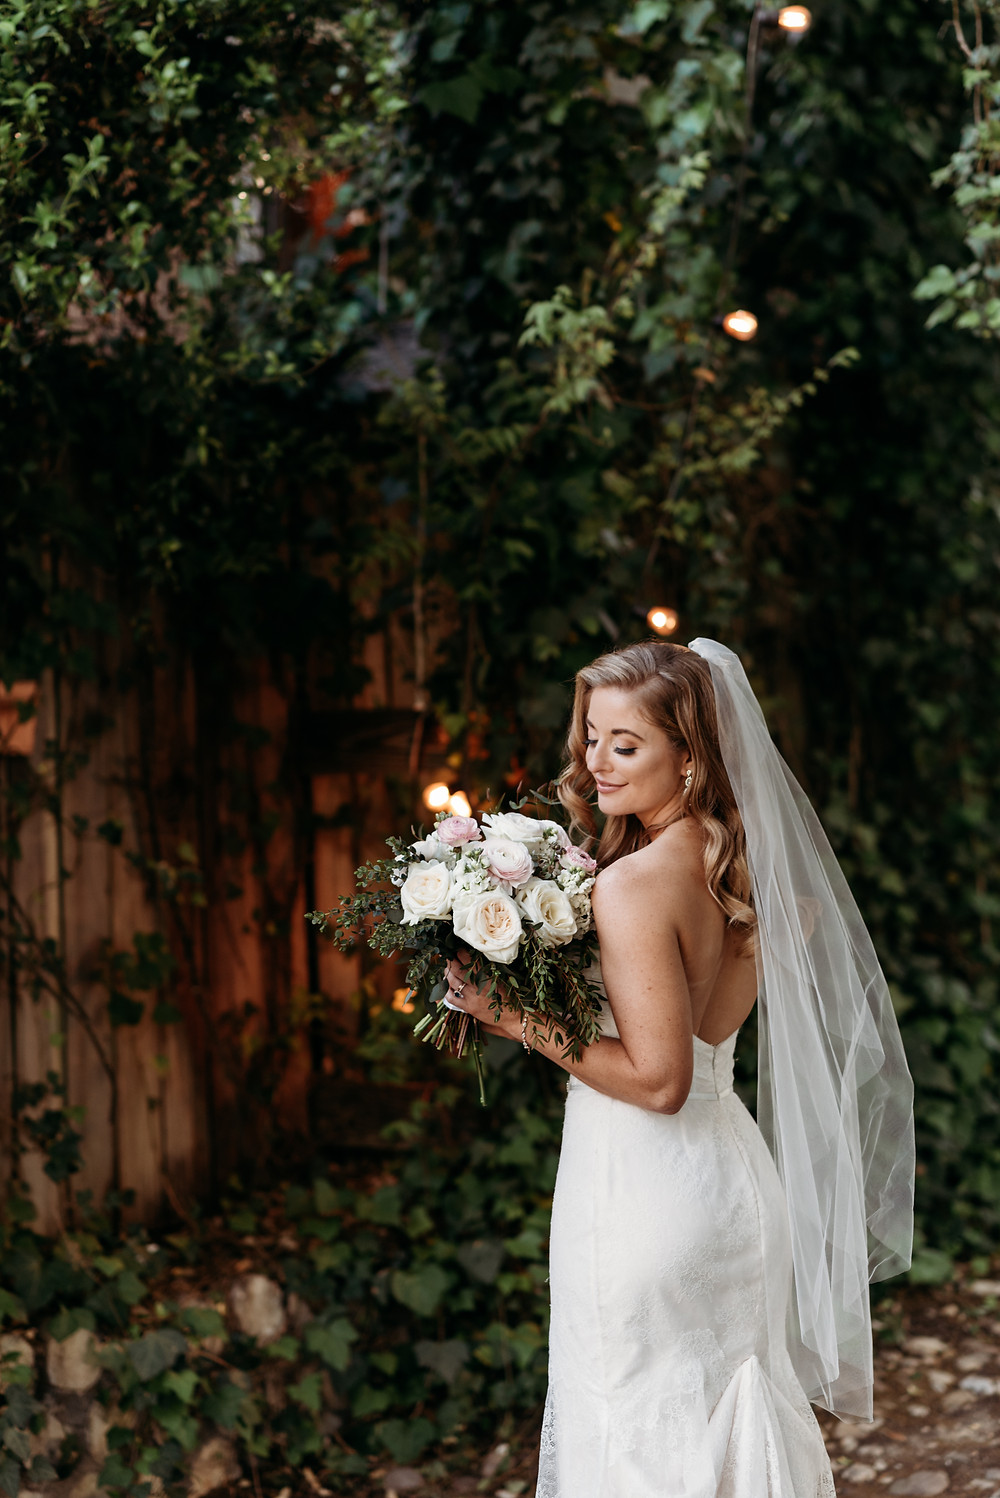 bridal portrait of bride in wedding dress with her boquet